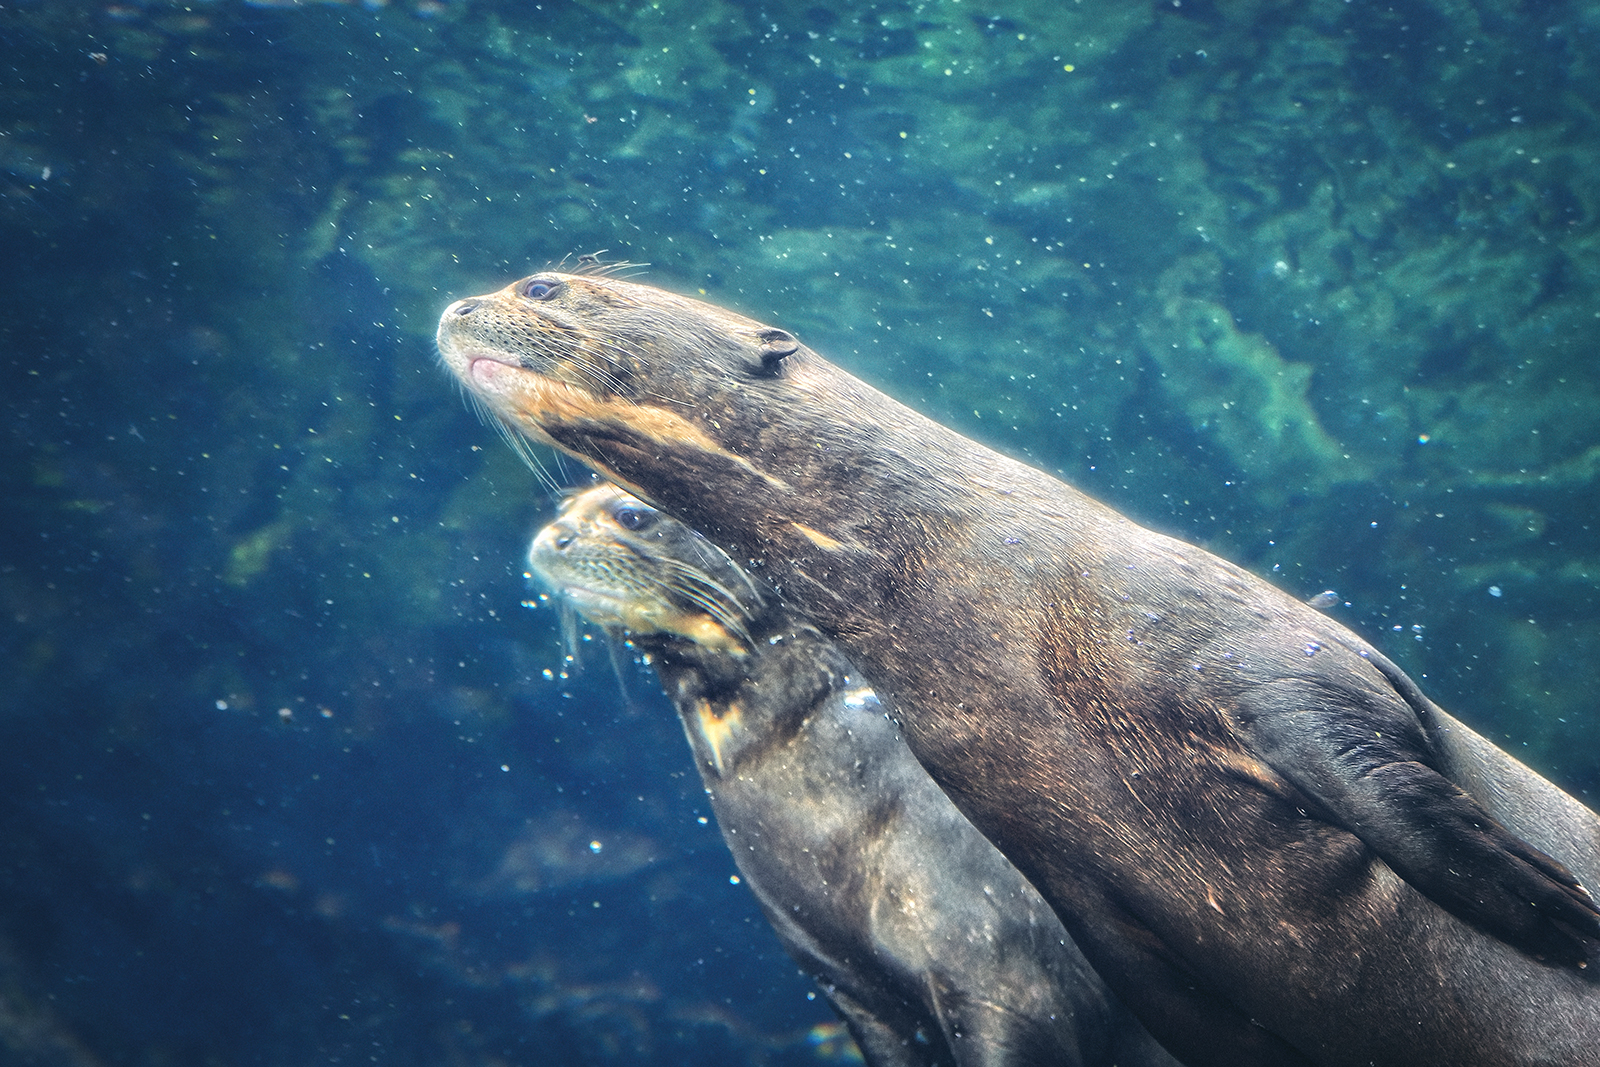 A pair of Giant River Otters swimming in the waters